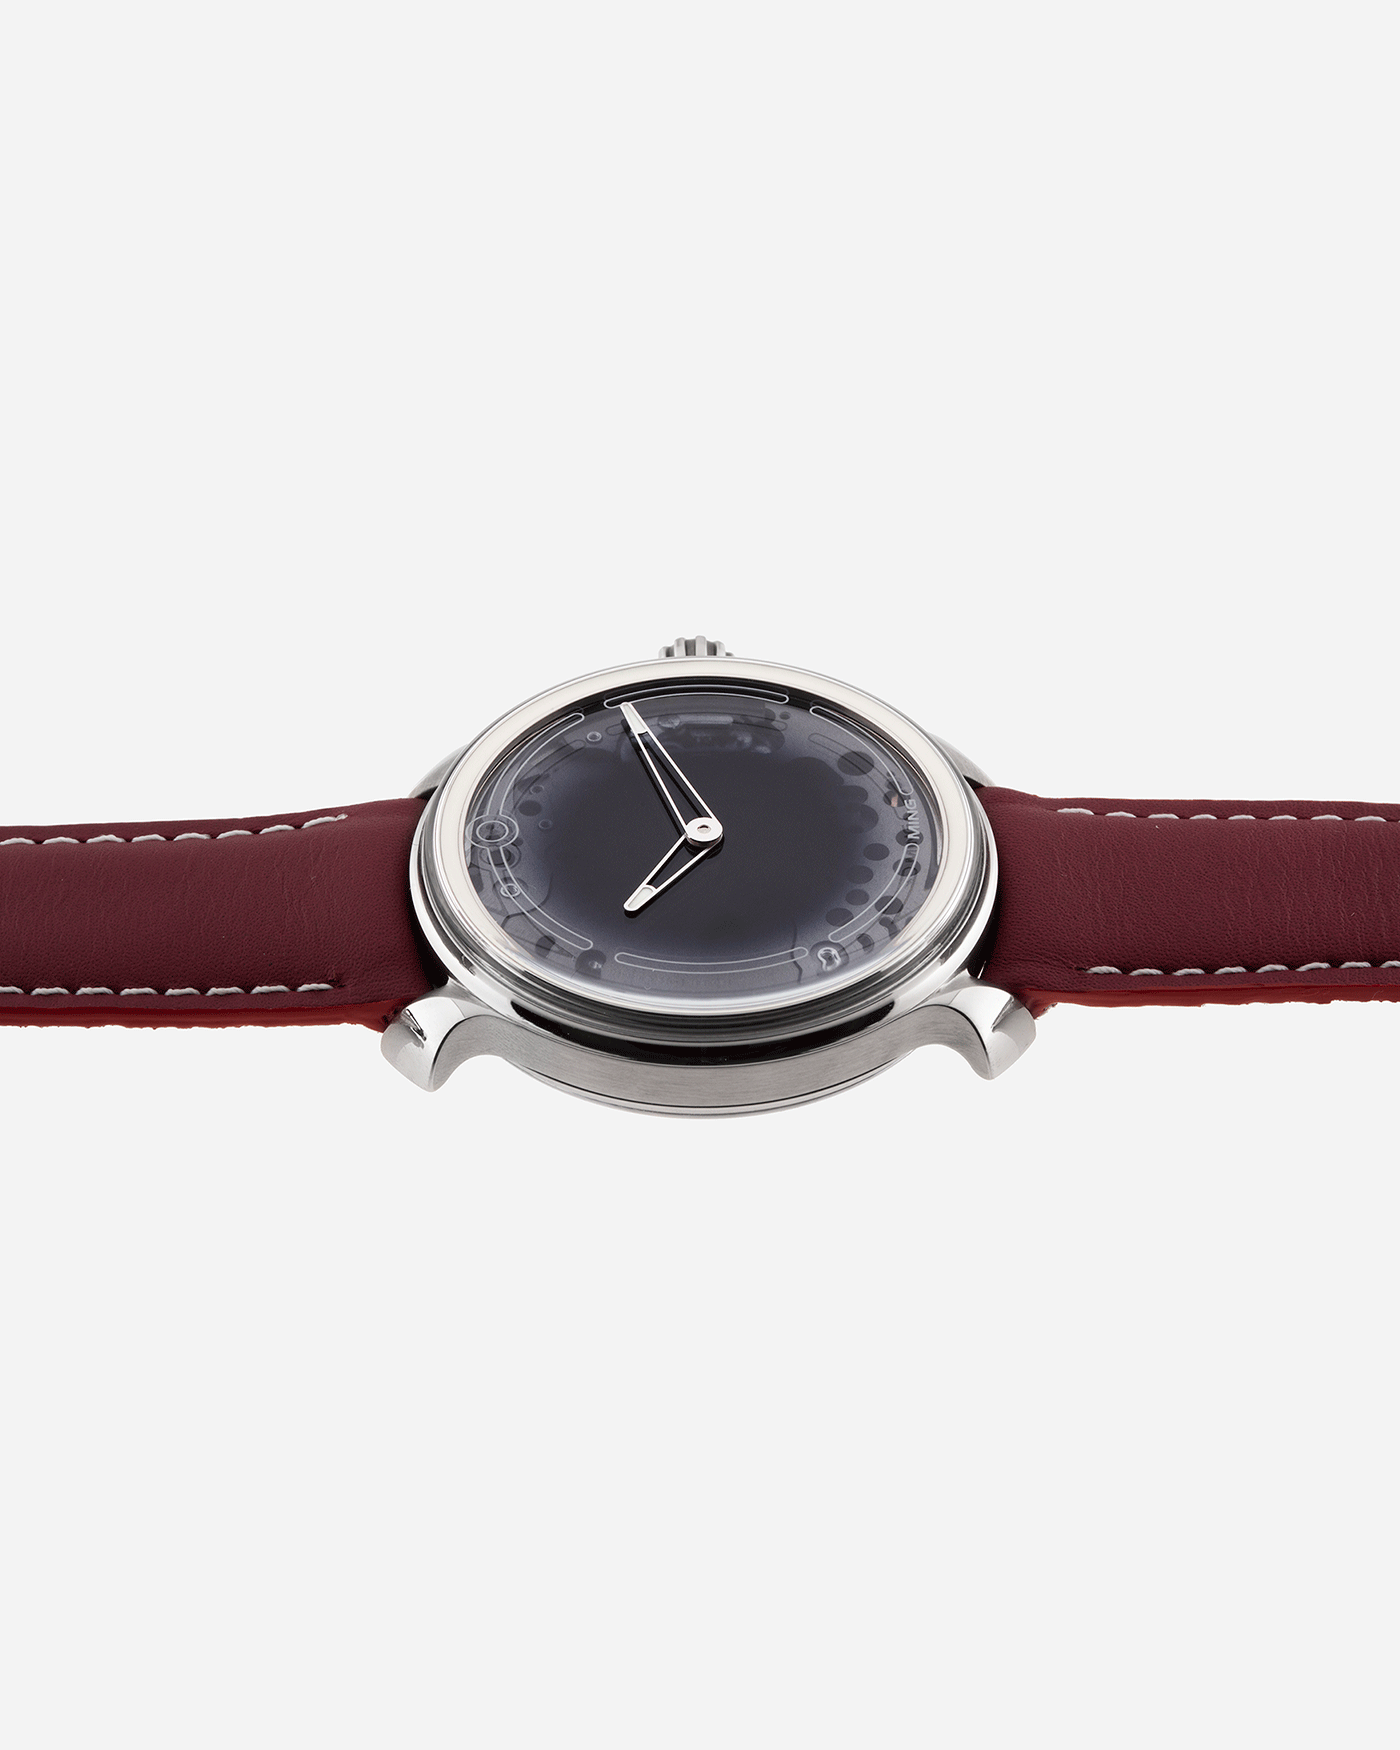 Brand: Ming Year: 2017 Model: 19.01 Material: Grade 5 Titanium Movement: Schwarz-Etienne for MING Cal. MSE100.1 Case Diameter: 39mm Strap: Ming / Jean Rousseau Red Leather Strap